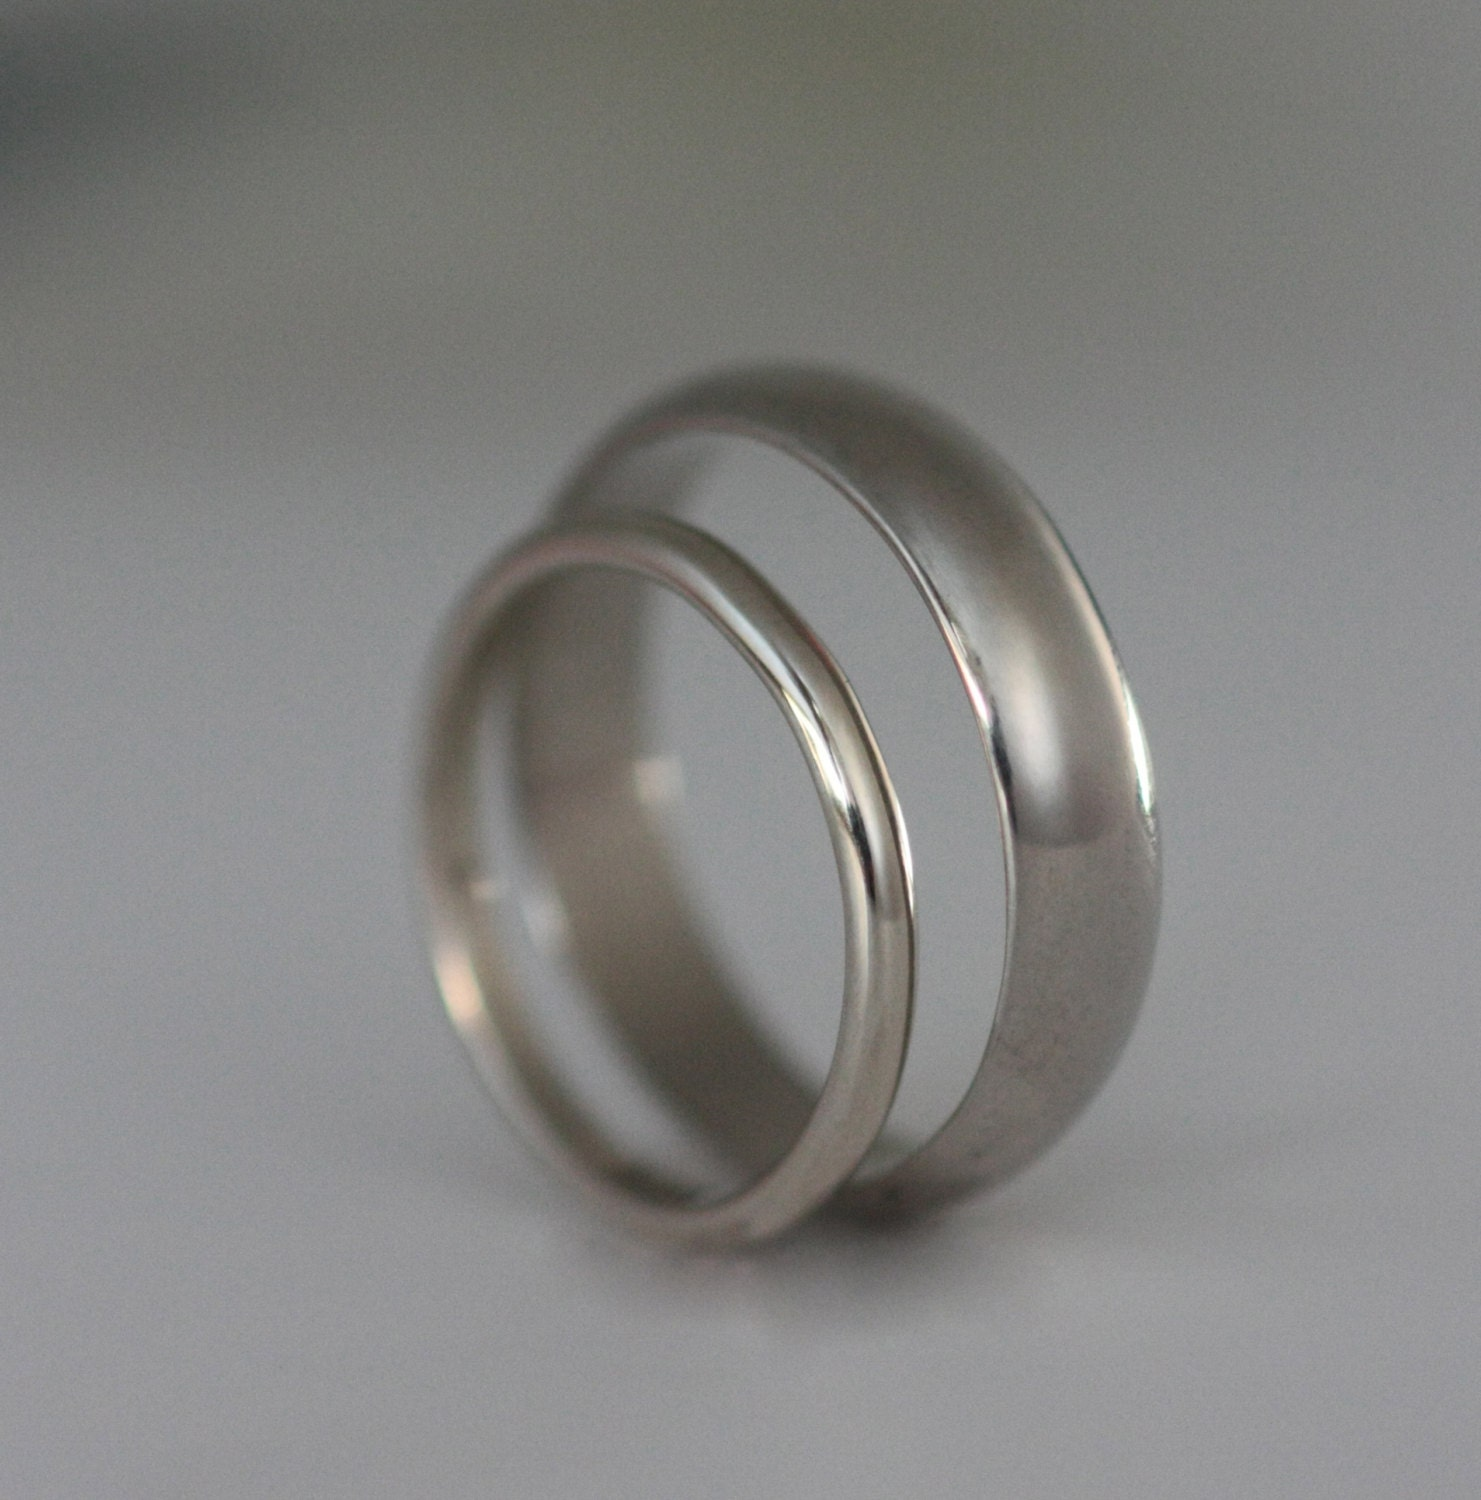 Set Recycled Palladium Wedding Bands Simple And By VKecojewelry